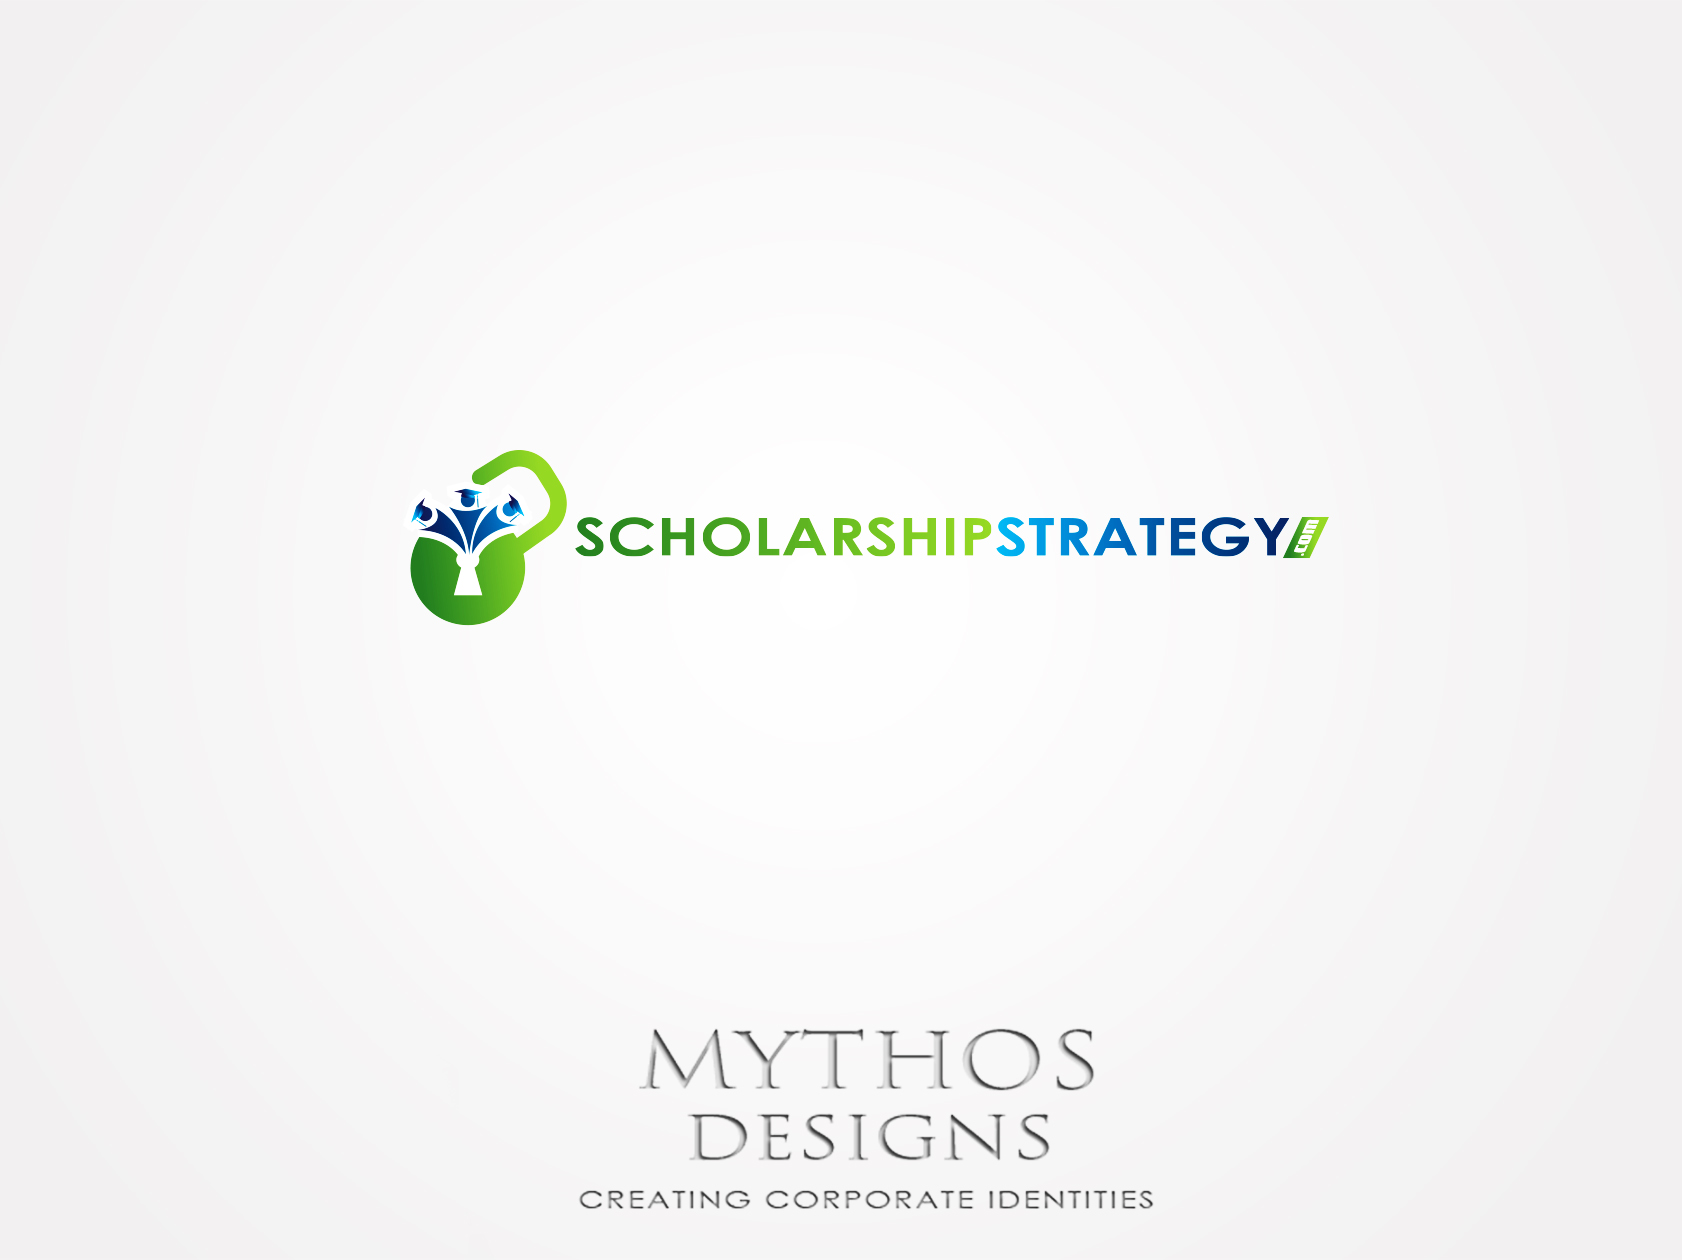 Logo Design by Mythos Designs - Entry No. 66 in the Logo Design Contest Captivating Logo Design for Scholarshipstrategy.com.